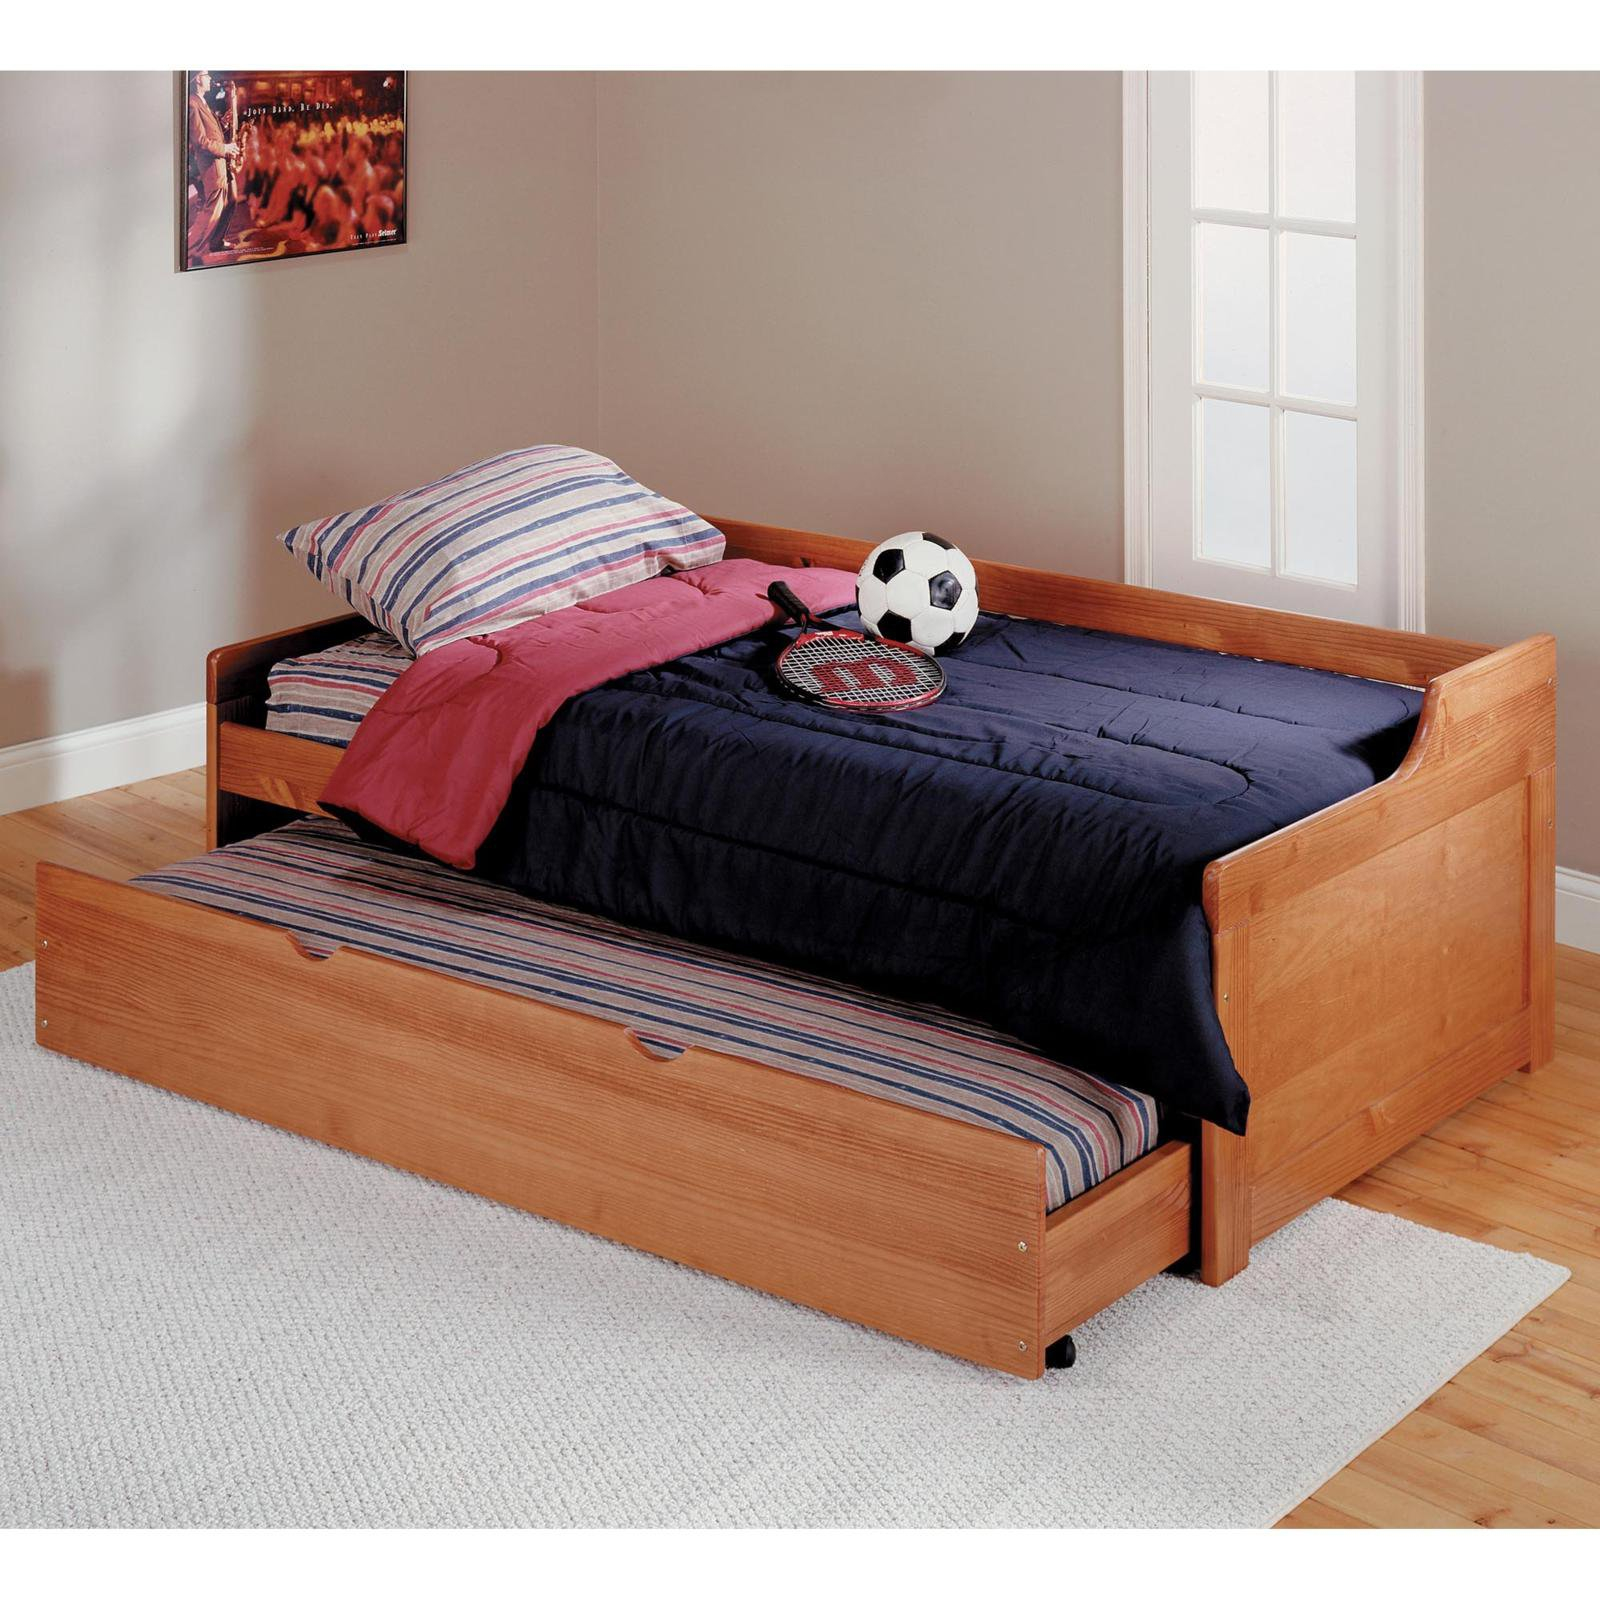 Exquisite brimnes daybed for small bedroom ideas with ikea brimnes daybed